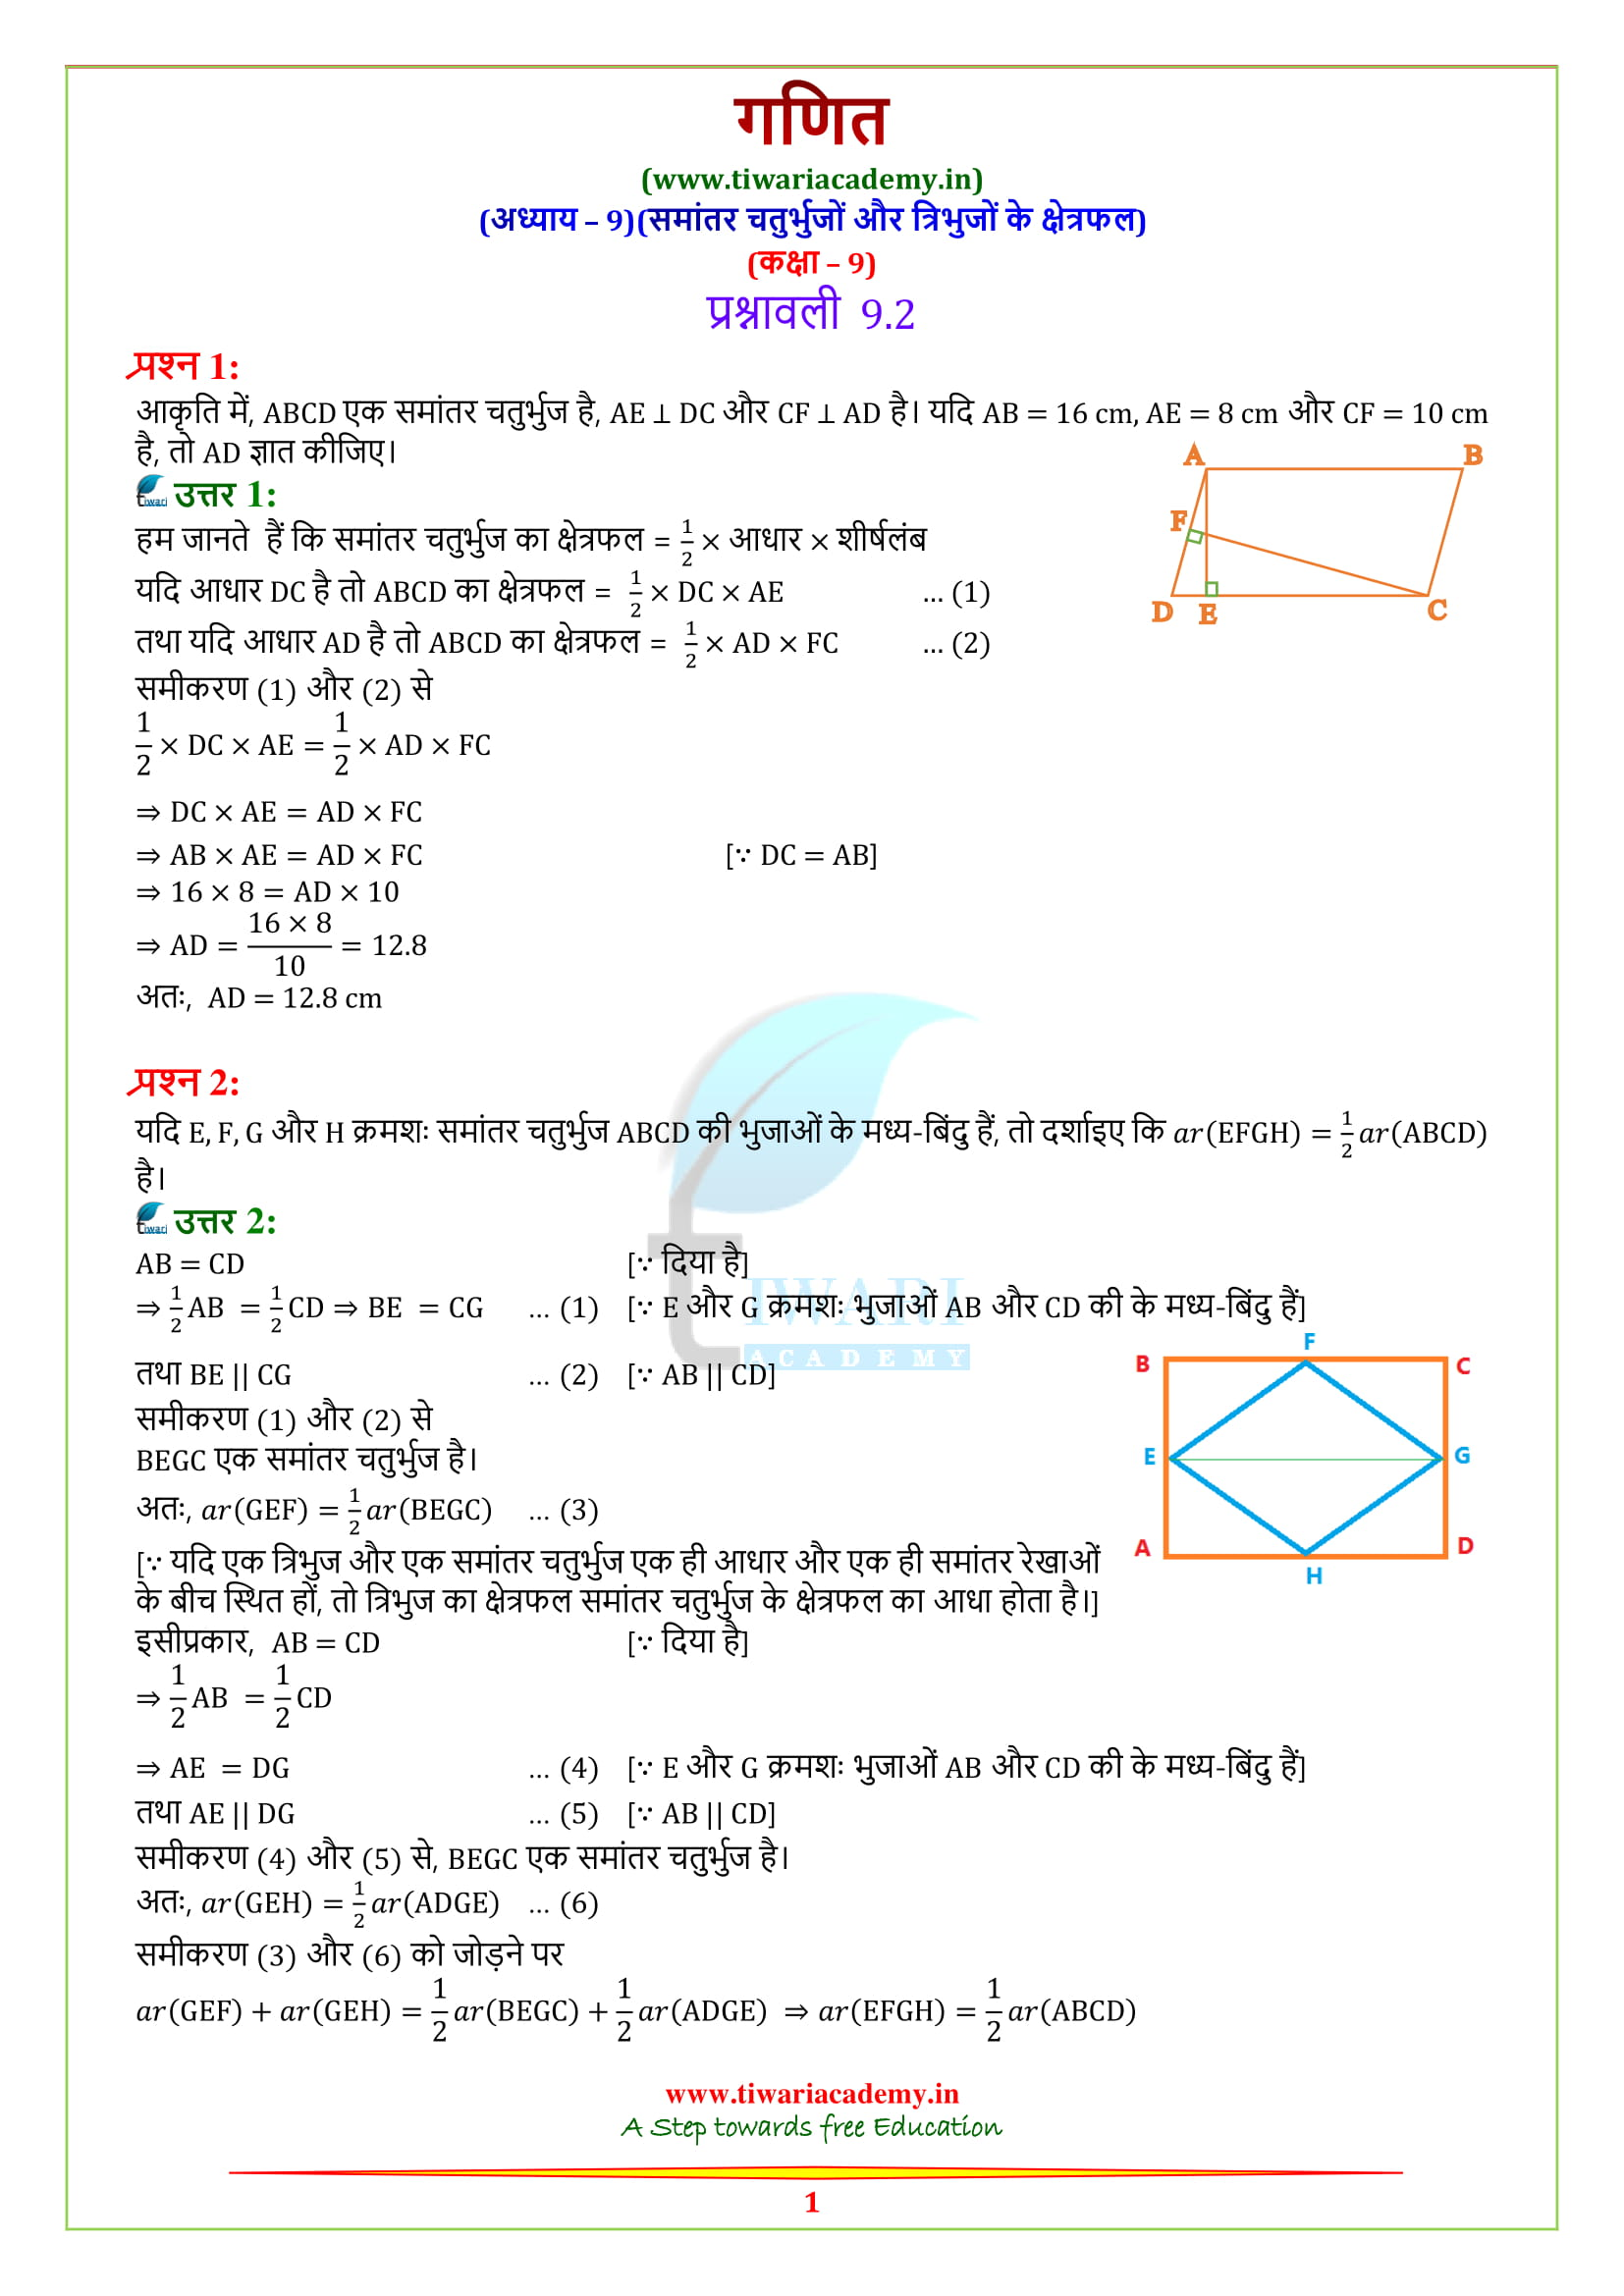 9 Maths exercise 9.2 solutions in hindi updated for 2018-19